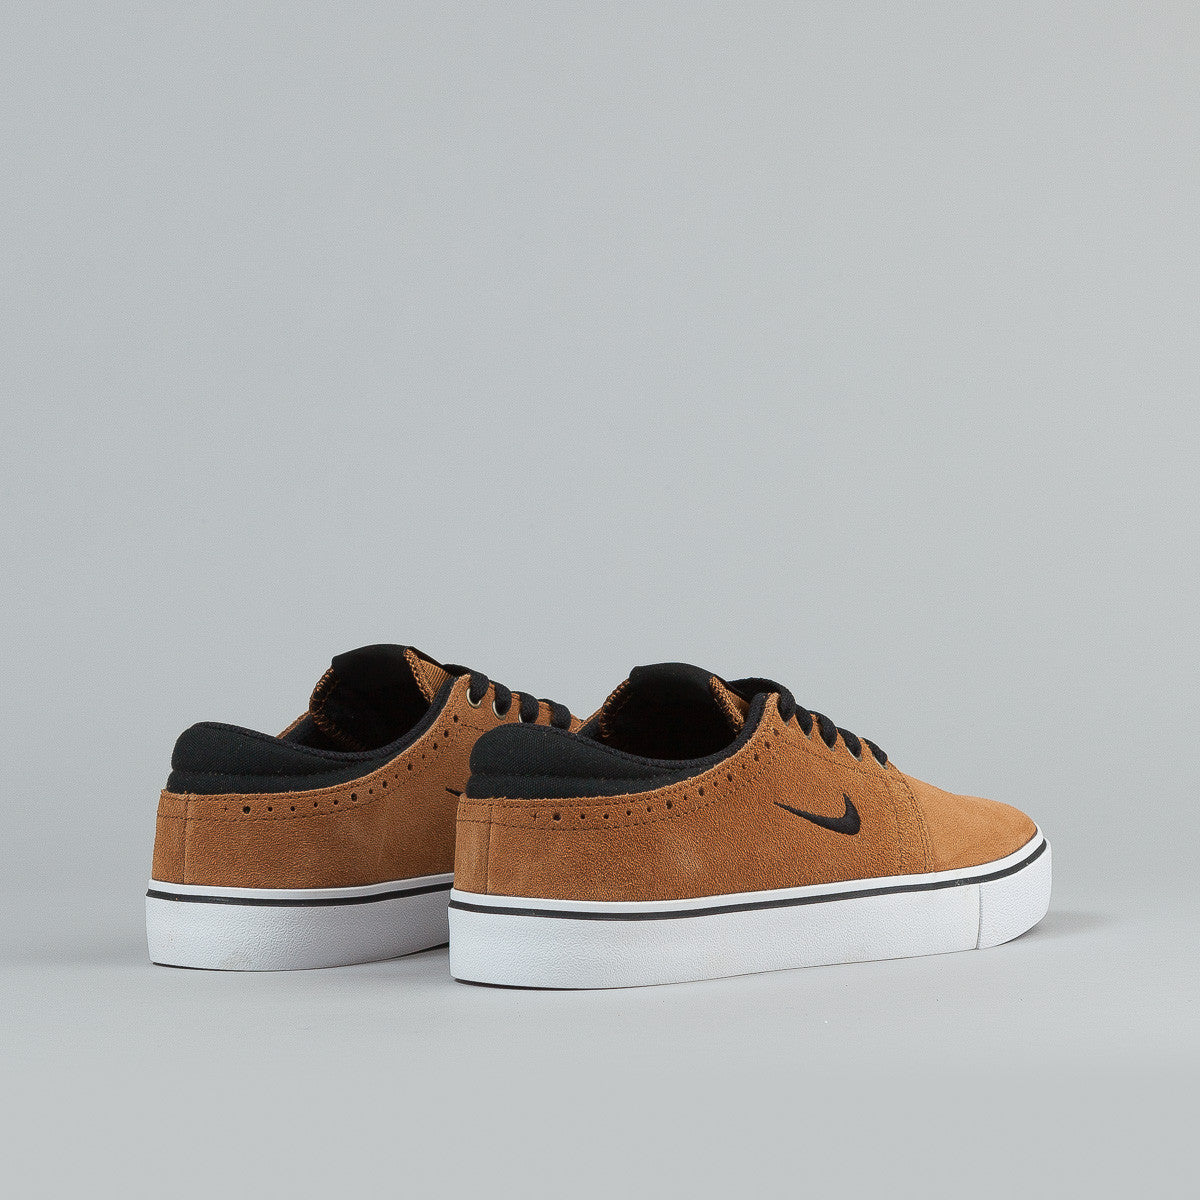 Nike Sb Team Edition Ale Brown / Black - White